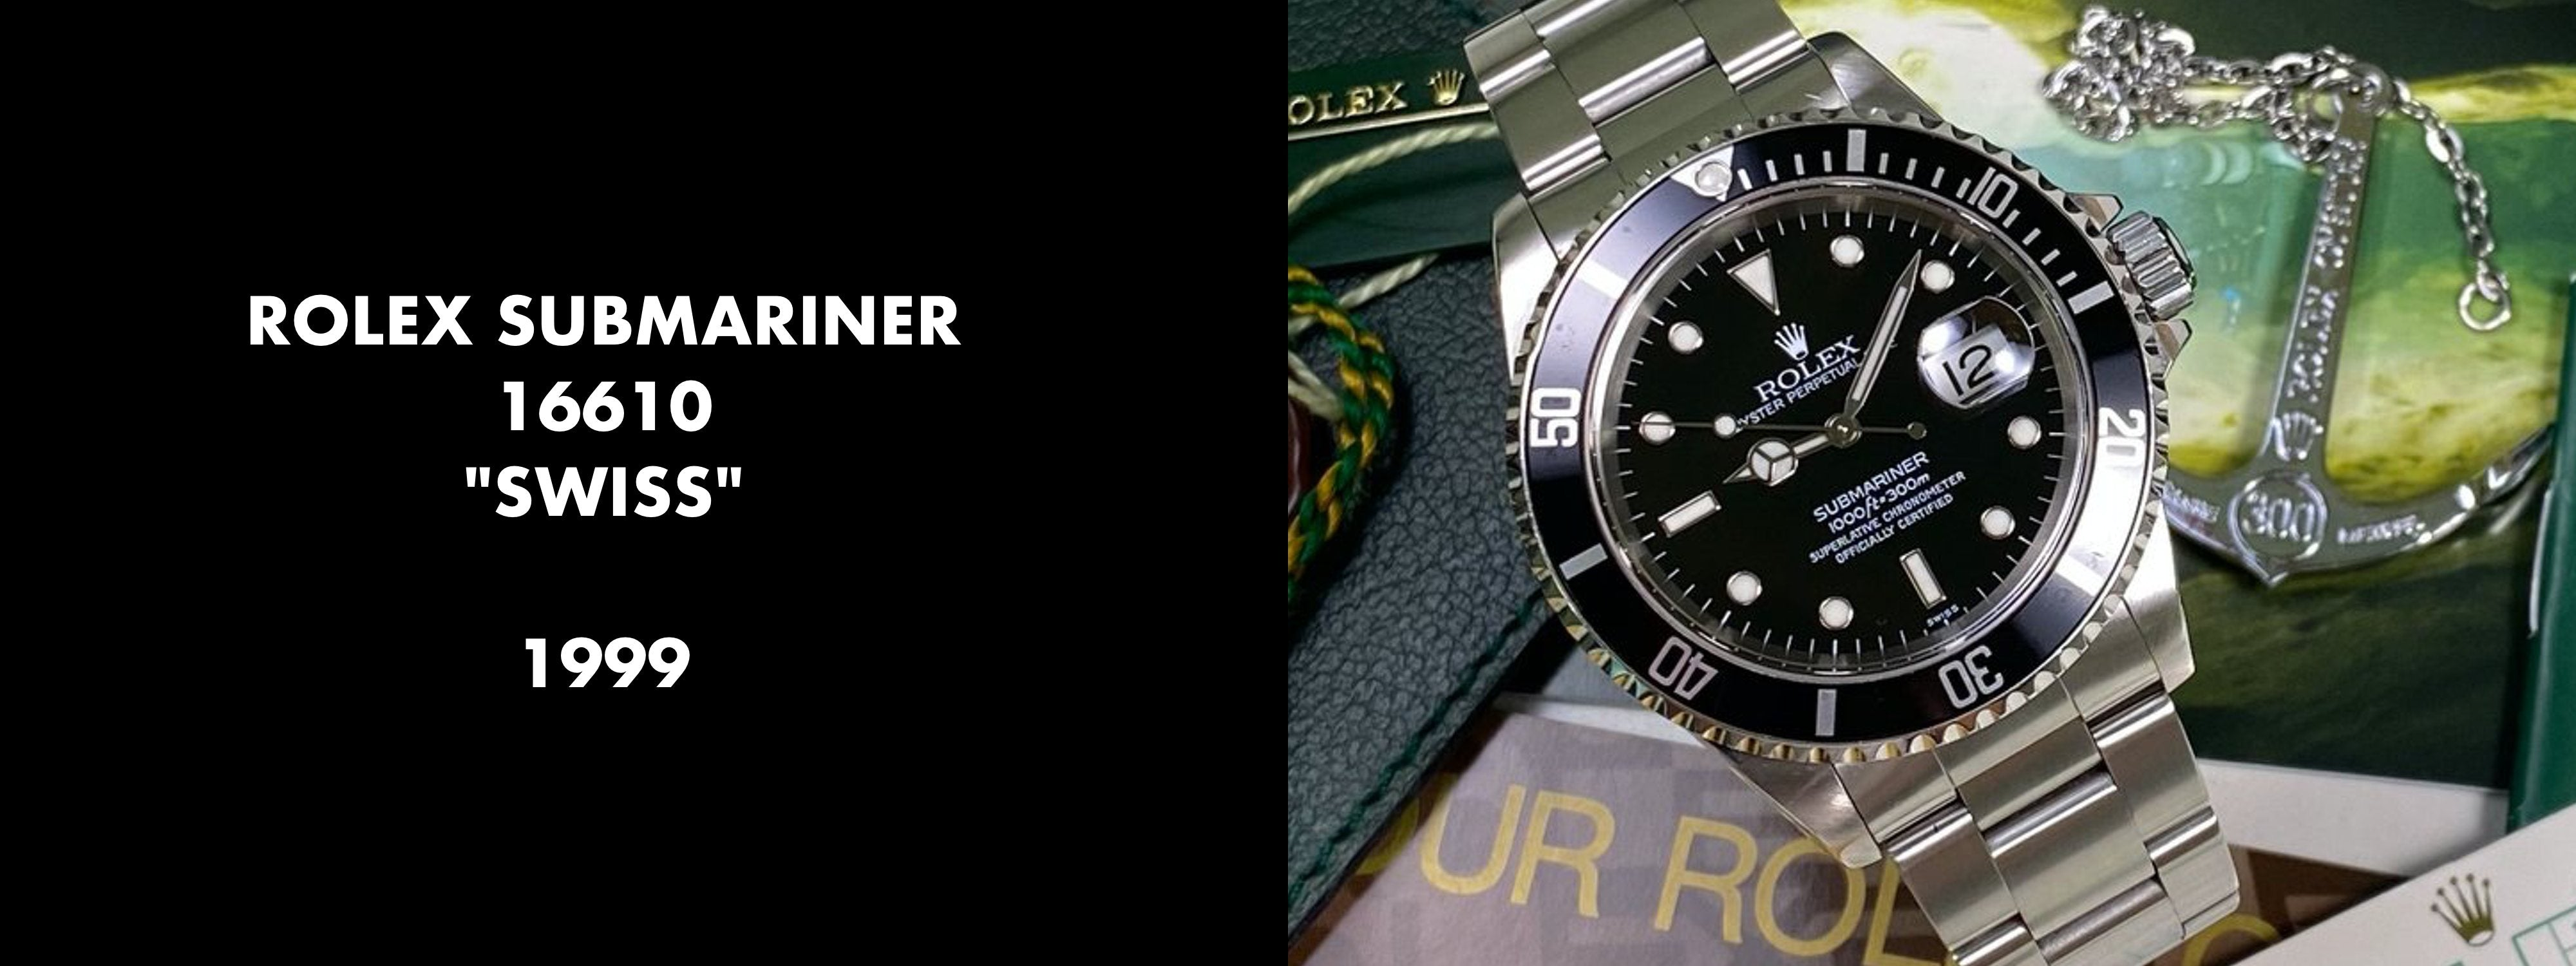 Rolex Submariner 16610 - SWISS only Dial